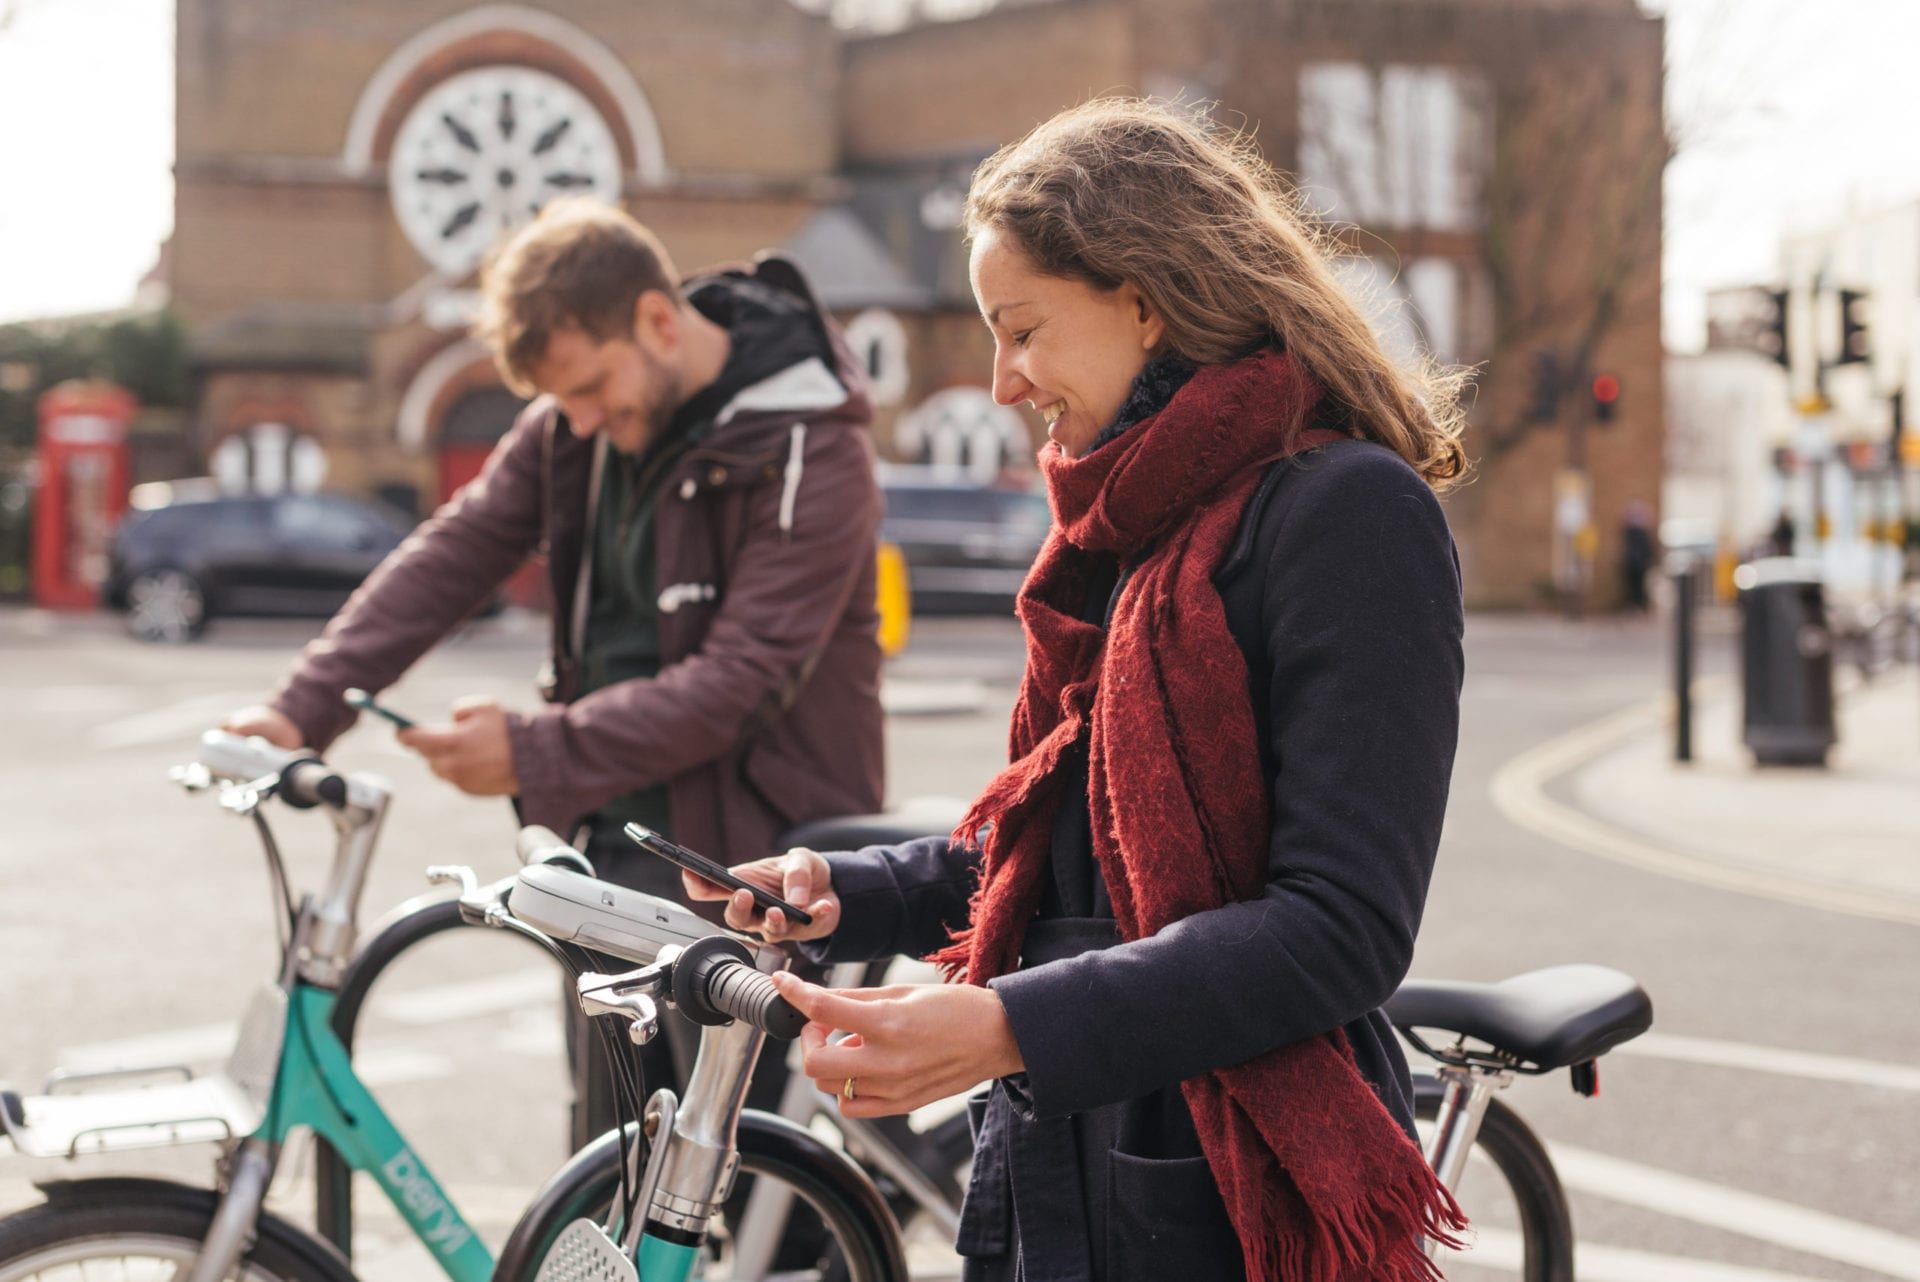 Beryl Bikes to Offer Free Rides to and from Polling Stations on Election Day